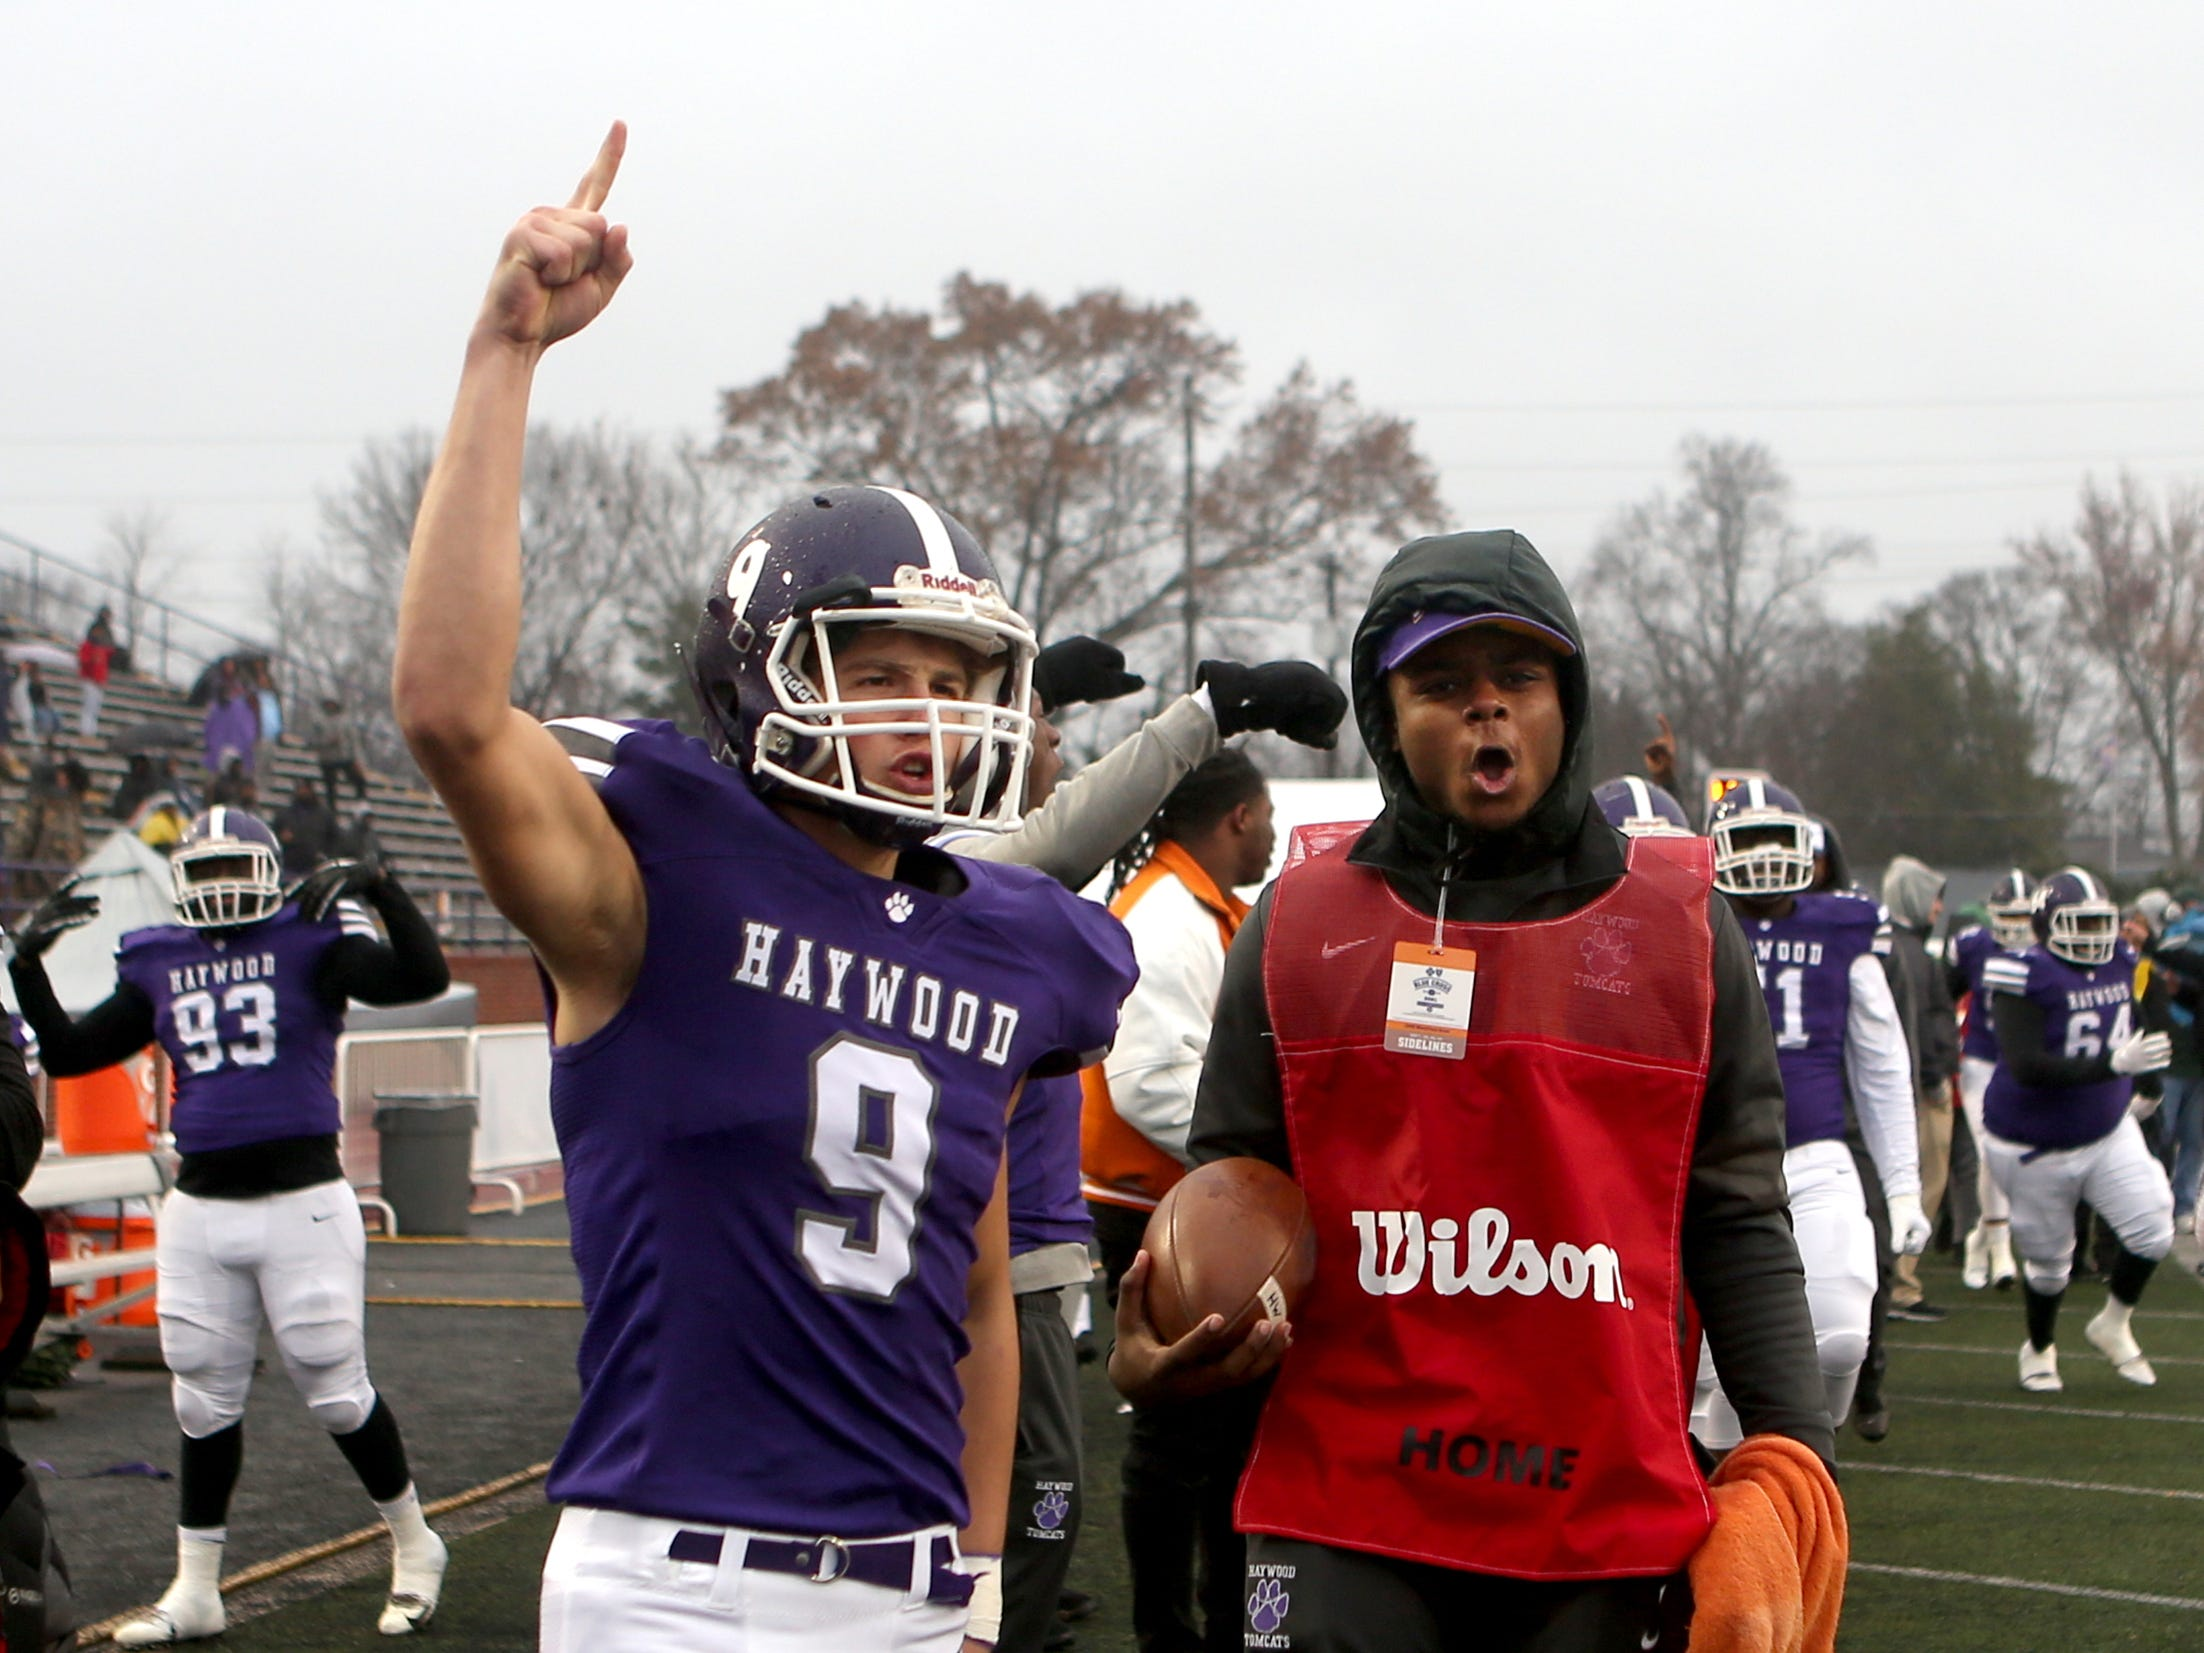 Haywood's  Andrew Stanley (9) celebrates a touchdown made by Haywood's  Deyondrius Hines (2) during the Class 4A BlueCross Bowl state championship Thursday, Nov. 29, 2018, at Tennessee Tech's Tucker Stadium in Cookeville, Tenn against Greeneville.